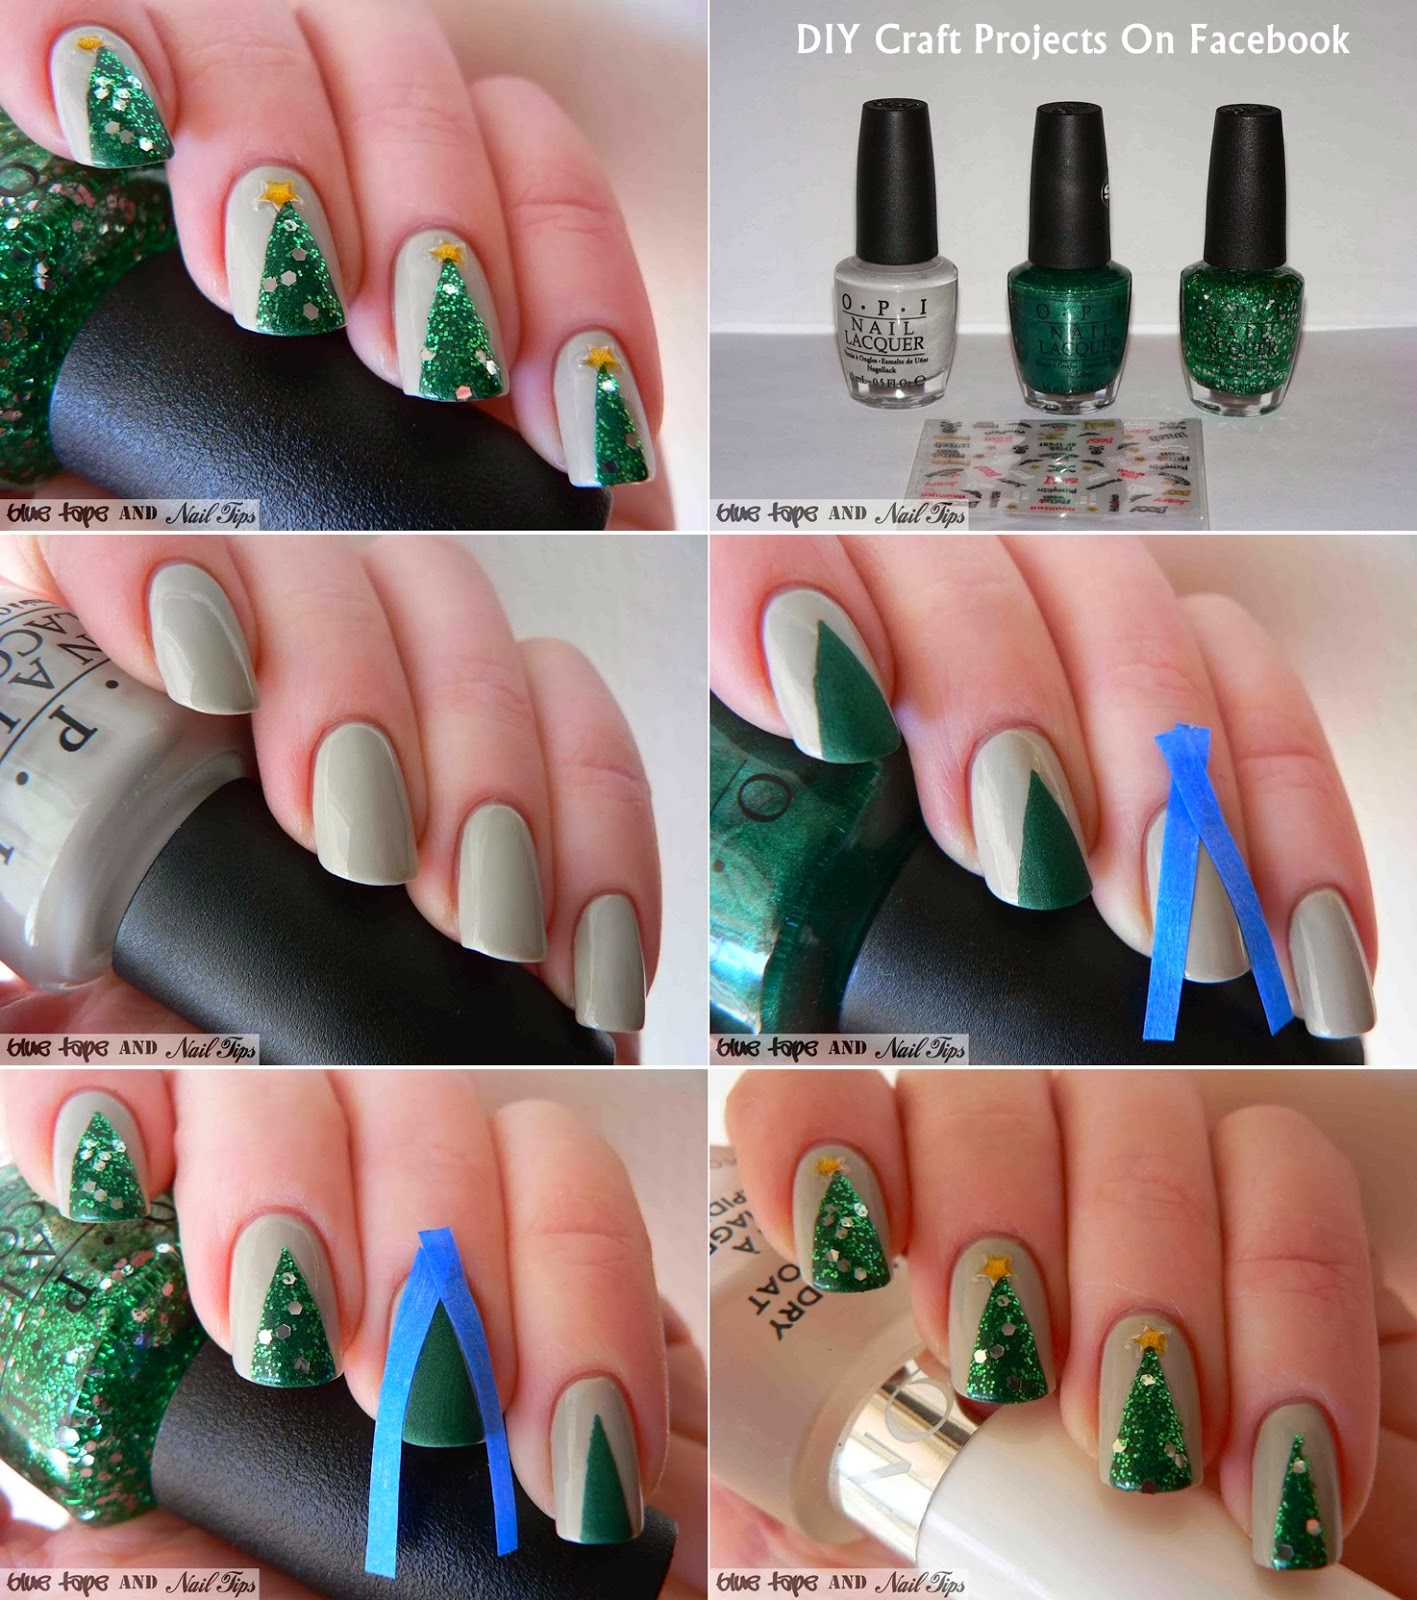 Easy Christmas Nail Art Designs DIY 2014 - Easy Christmas Nail Art Designs DIY 2014 Nail Art Easy